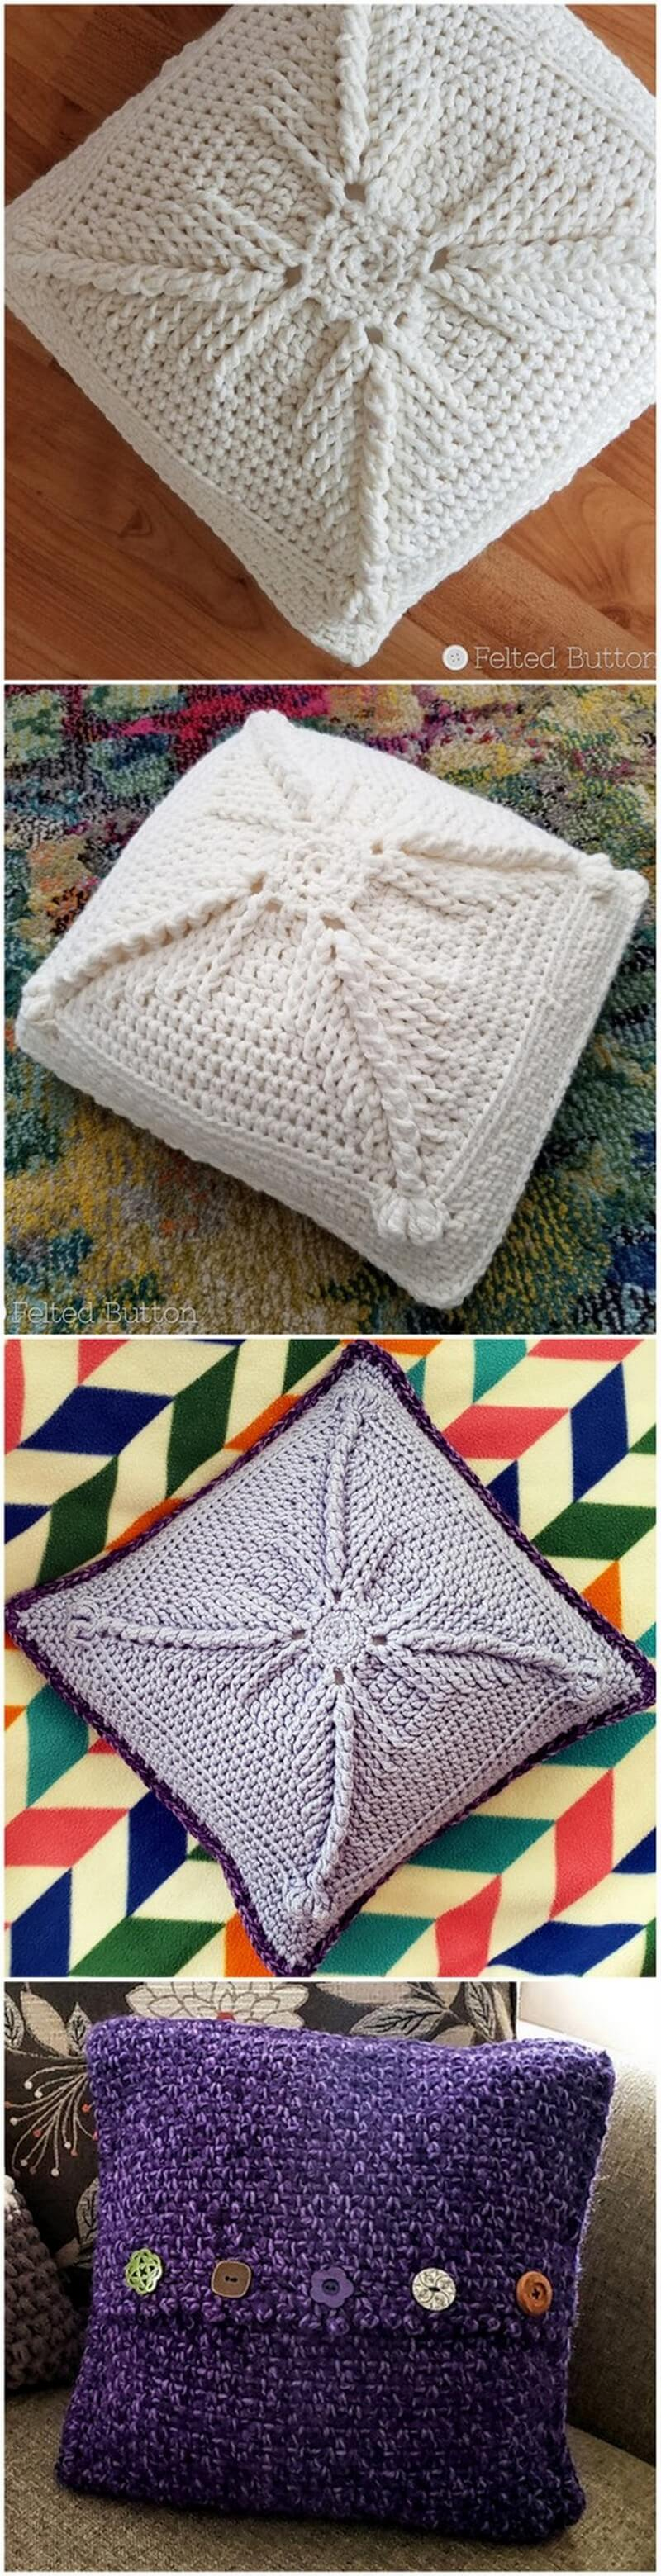 Crochet Pillow Pattern (4)